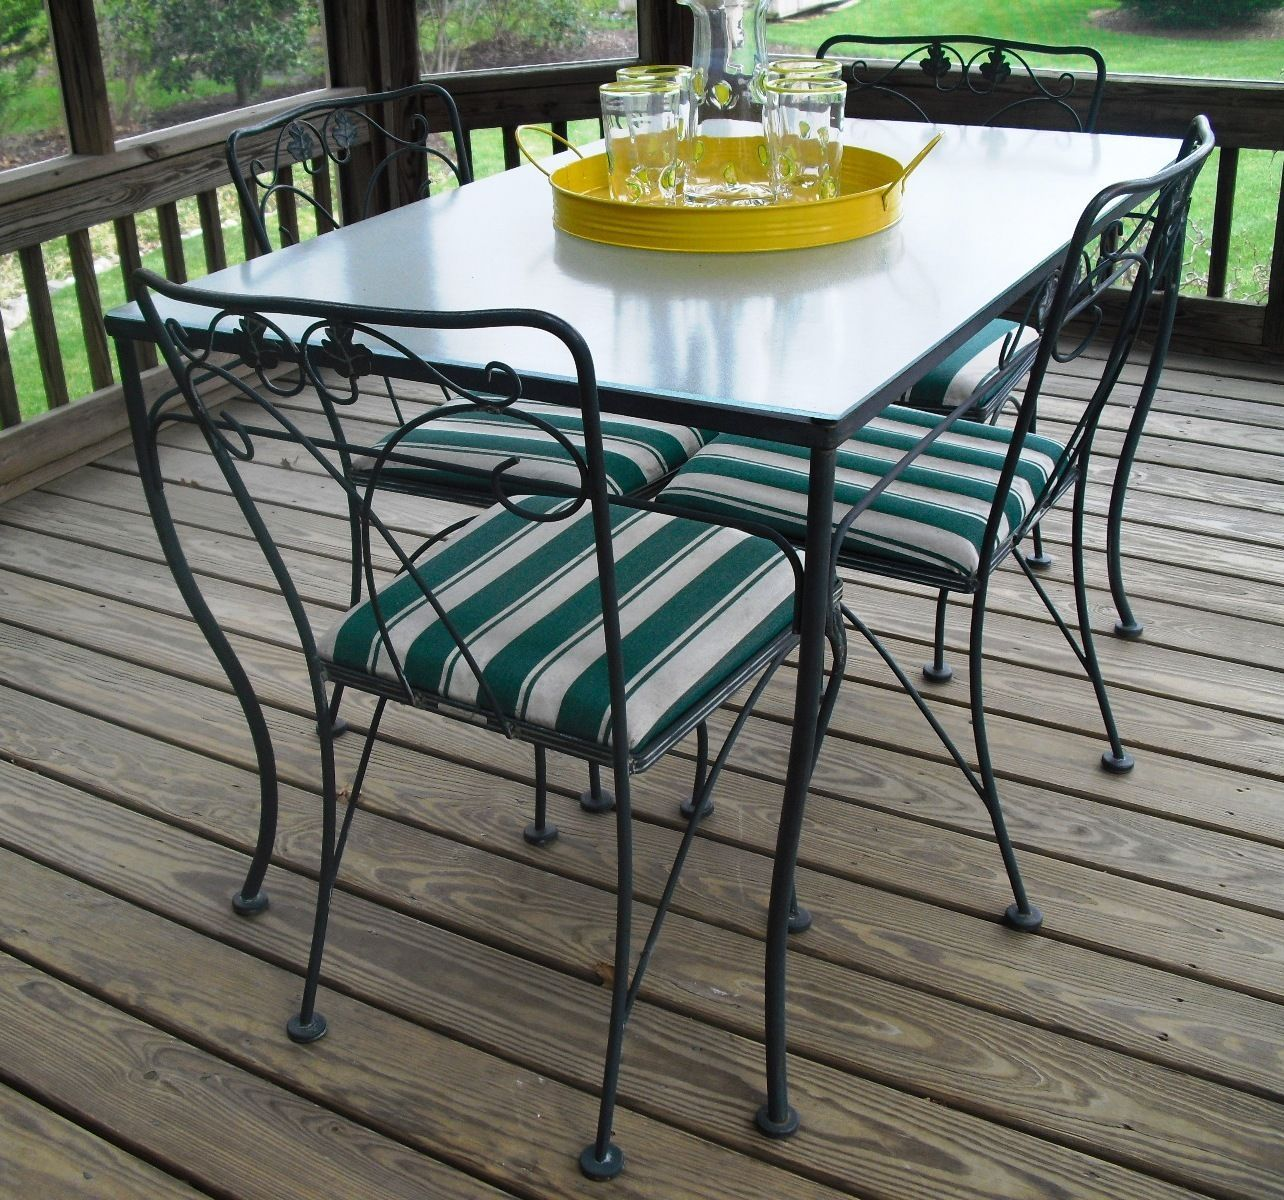 furniture motion plus chairs sumptuous design iron wood chili home patio four cushion riveting ebay metal black wrought antique balcony engaging middletown